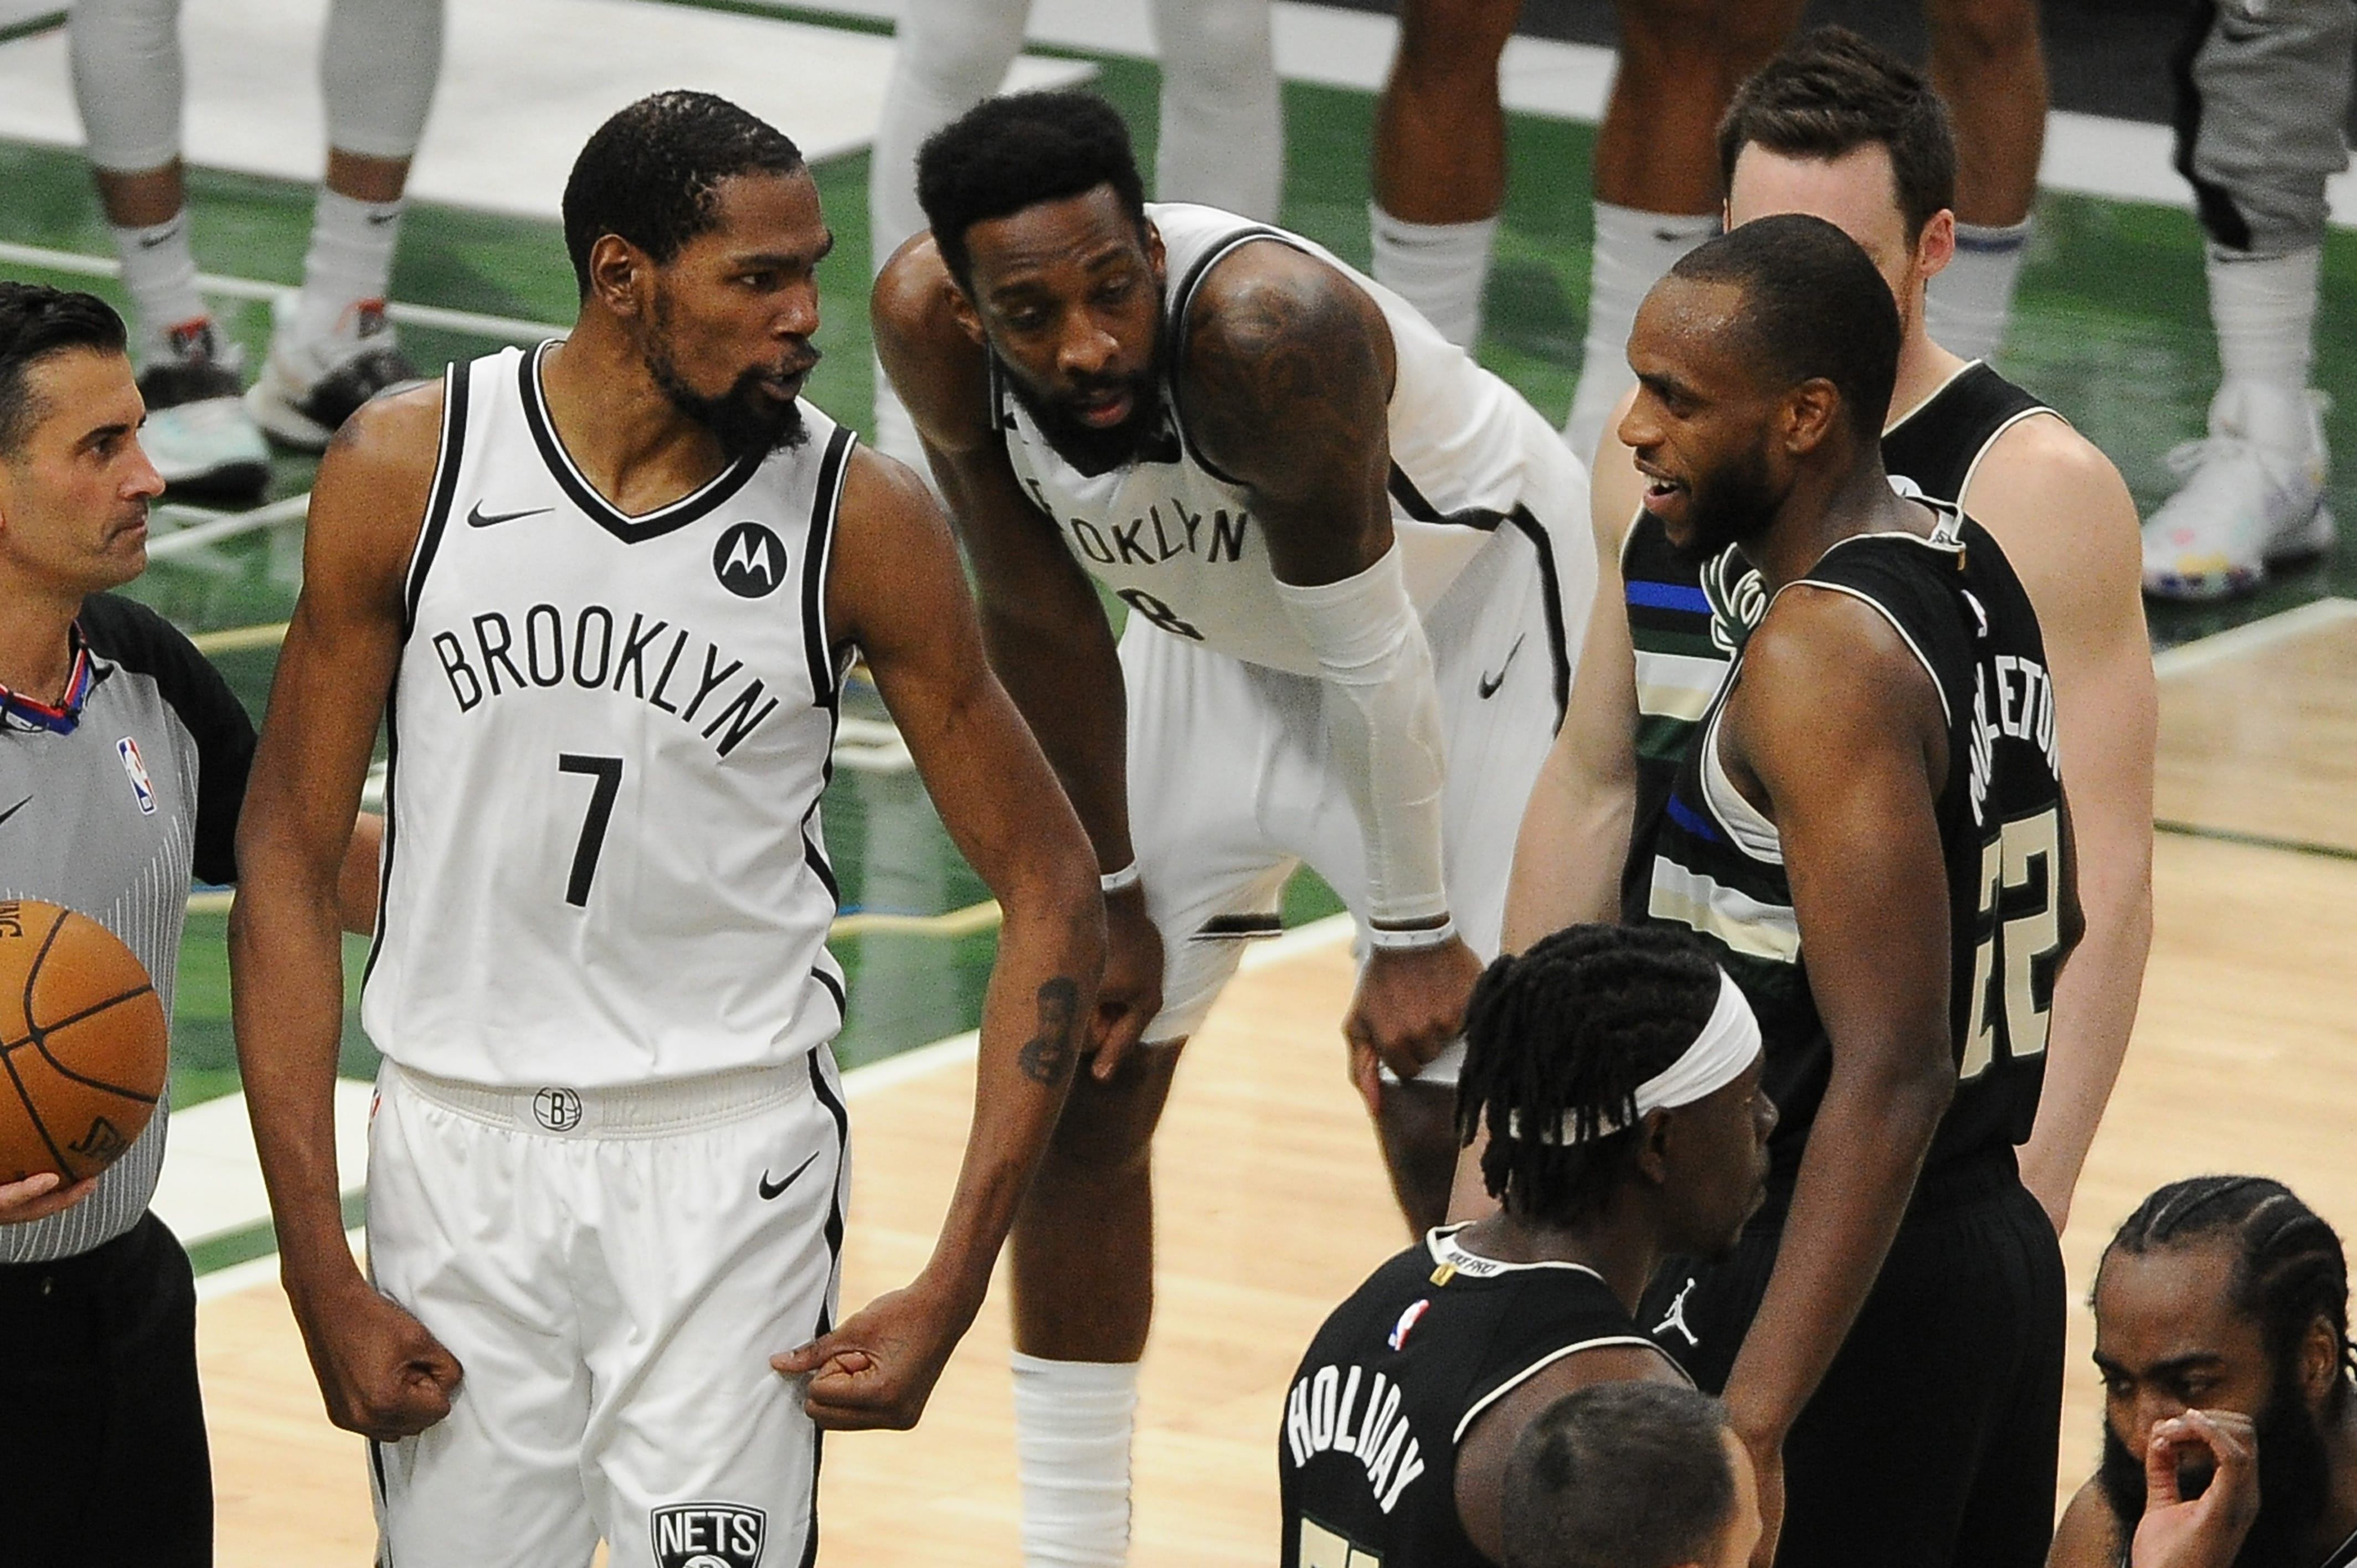 Key Game 7 questions: Do Nets have enough left in the tank? Can Bucks win on the road?